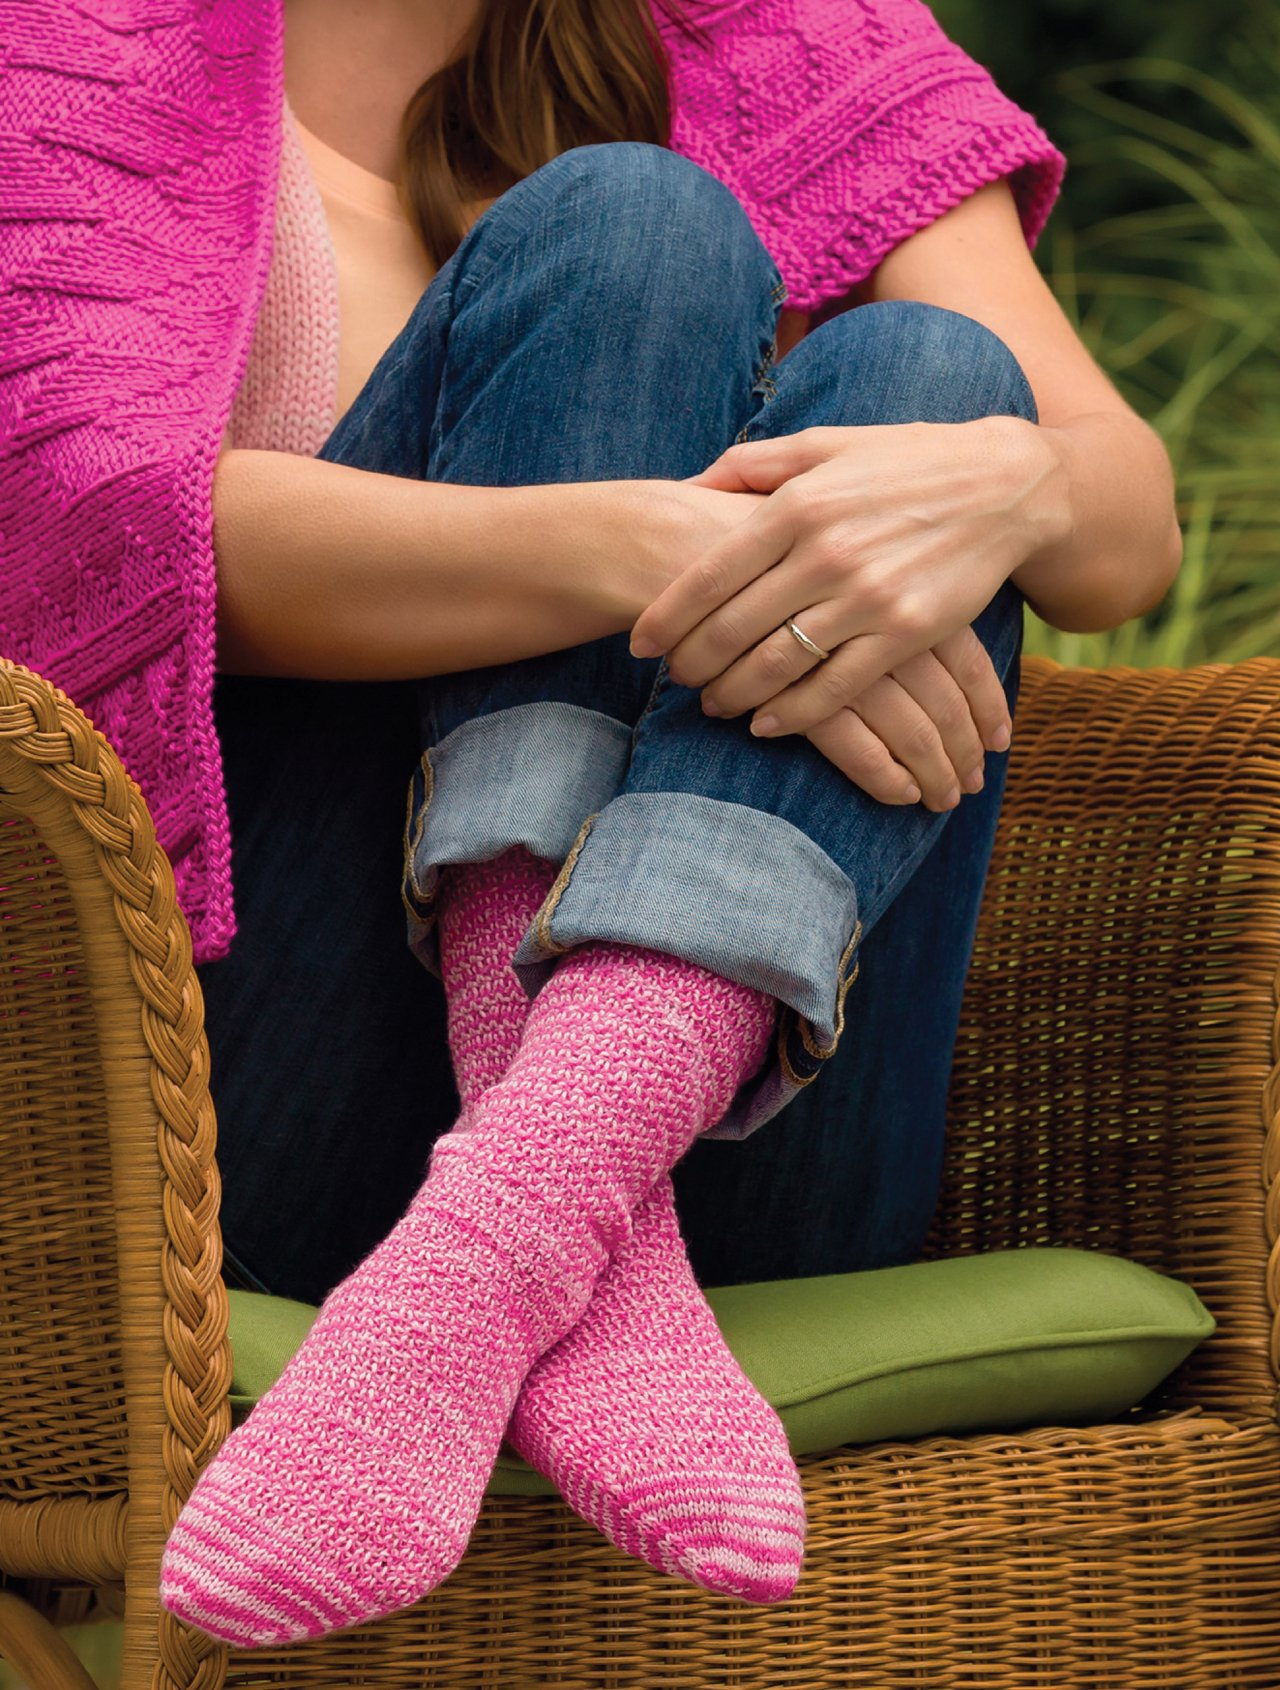 Knit Pink: 25 Patterns to Knit for Comfort, Gratitude, and Charity